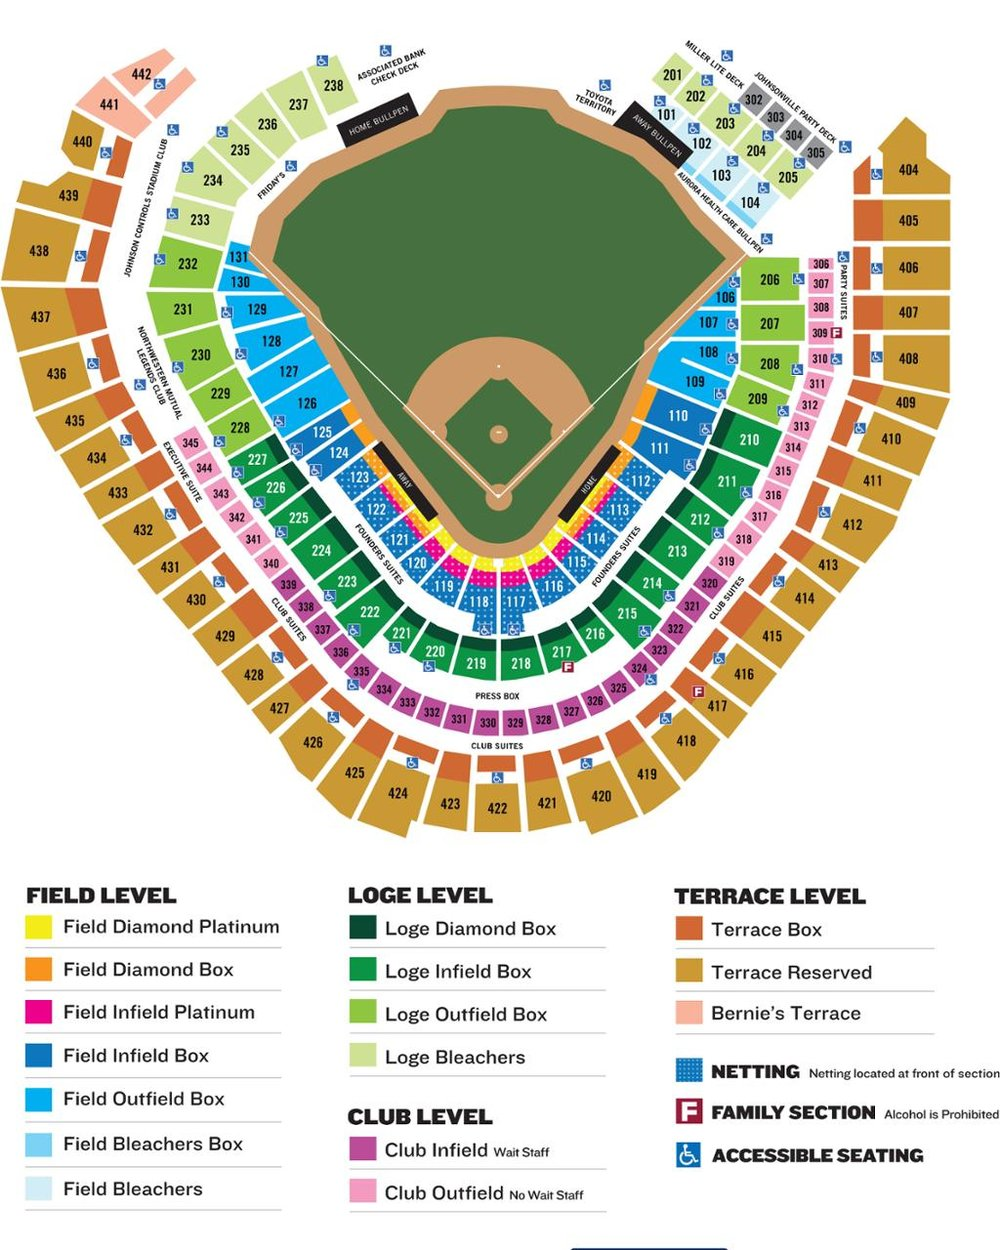 edited from source: https://www.mlb.com/brewers/ballpark/seat-map